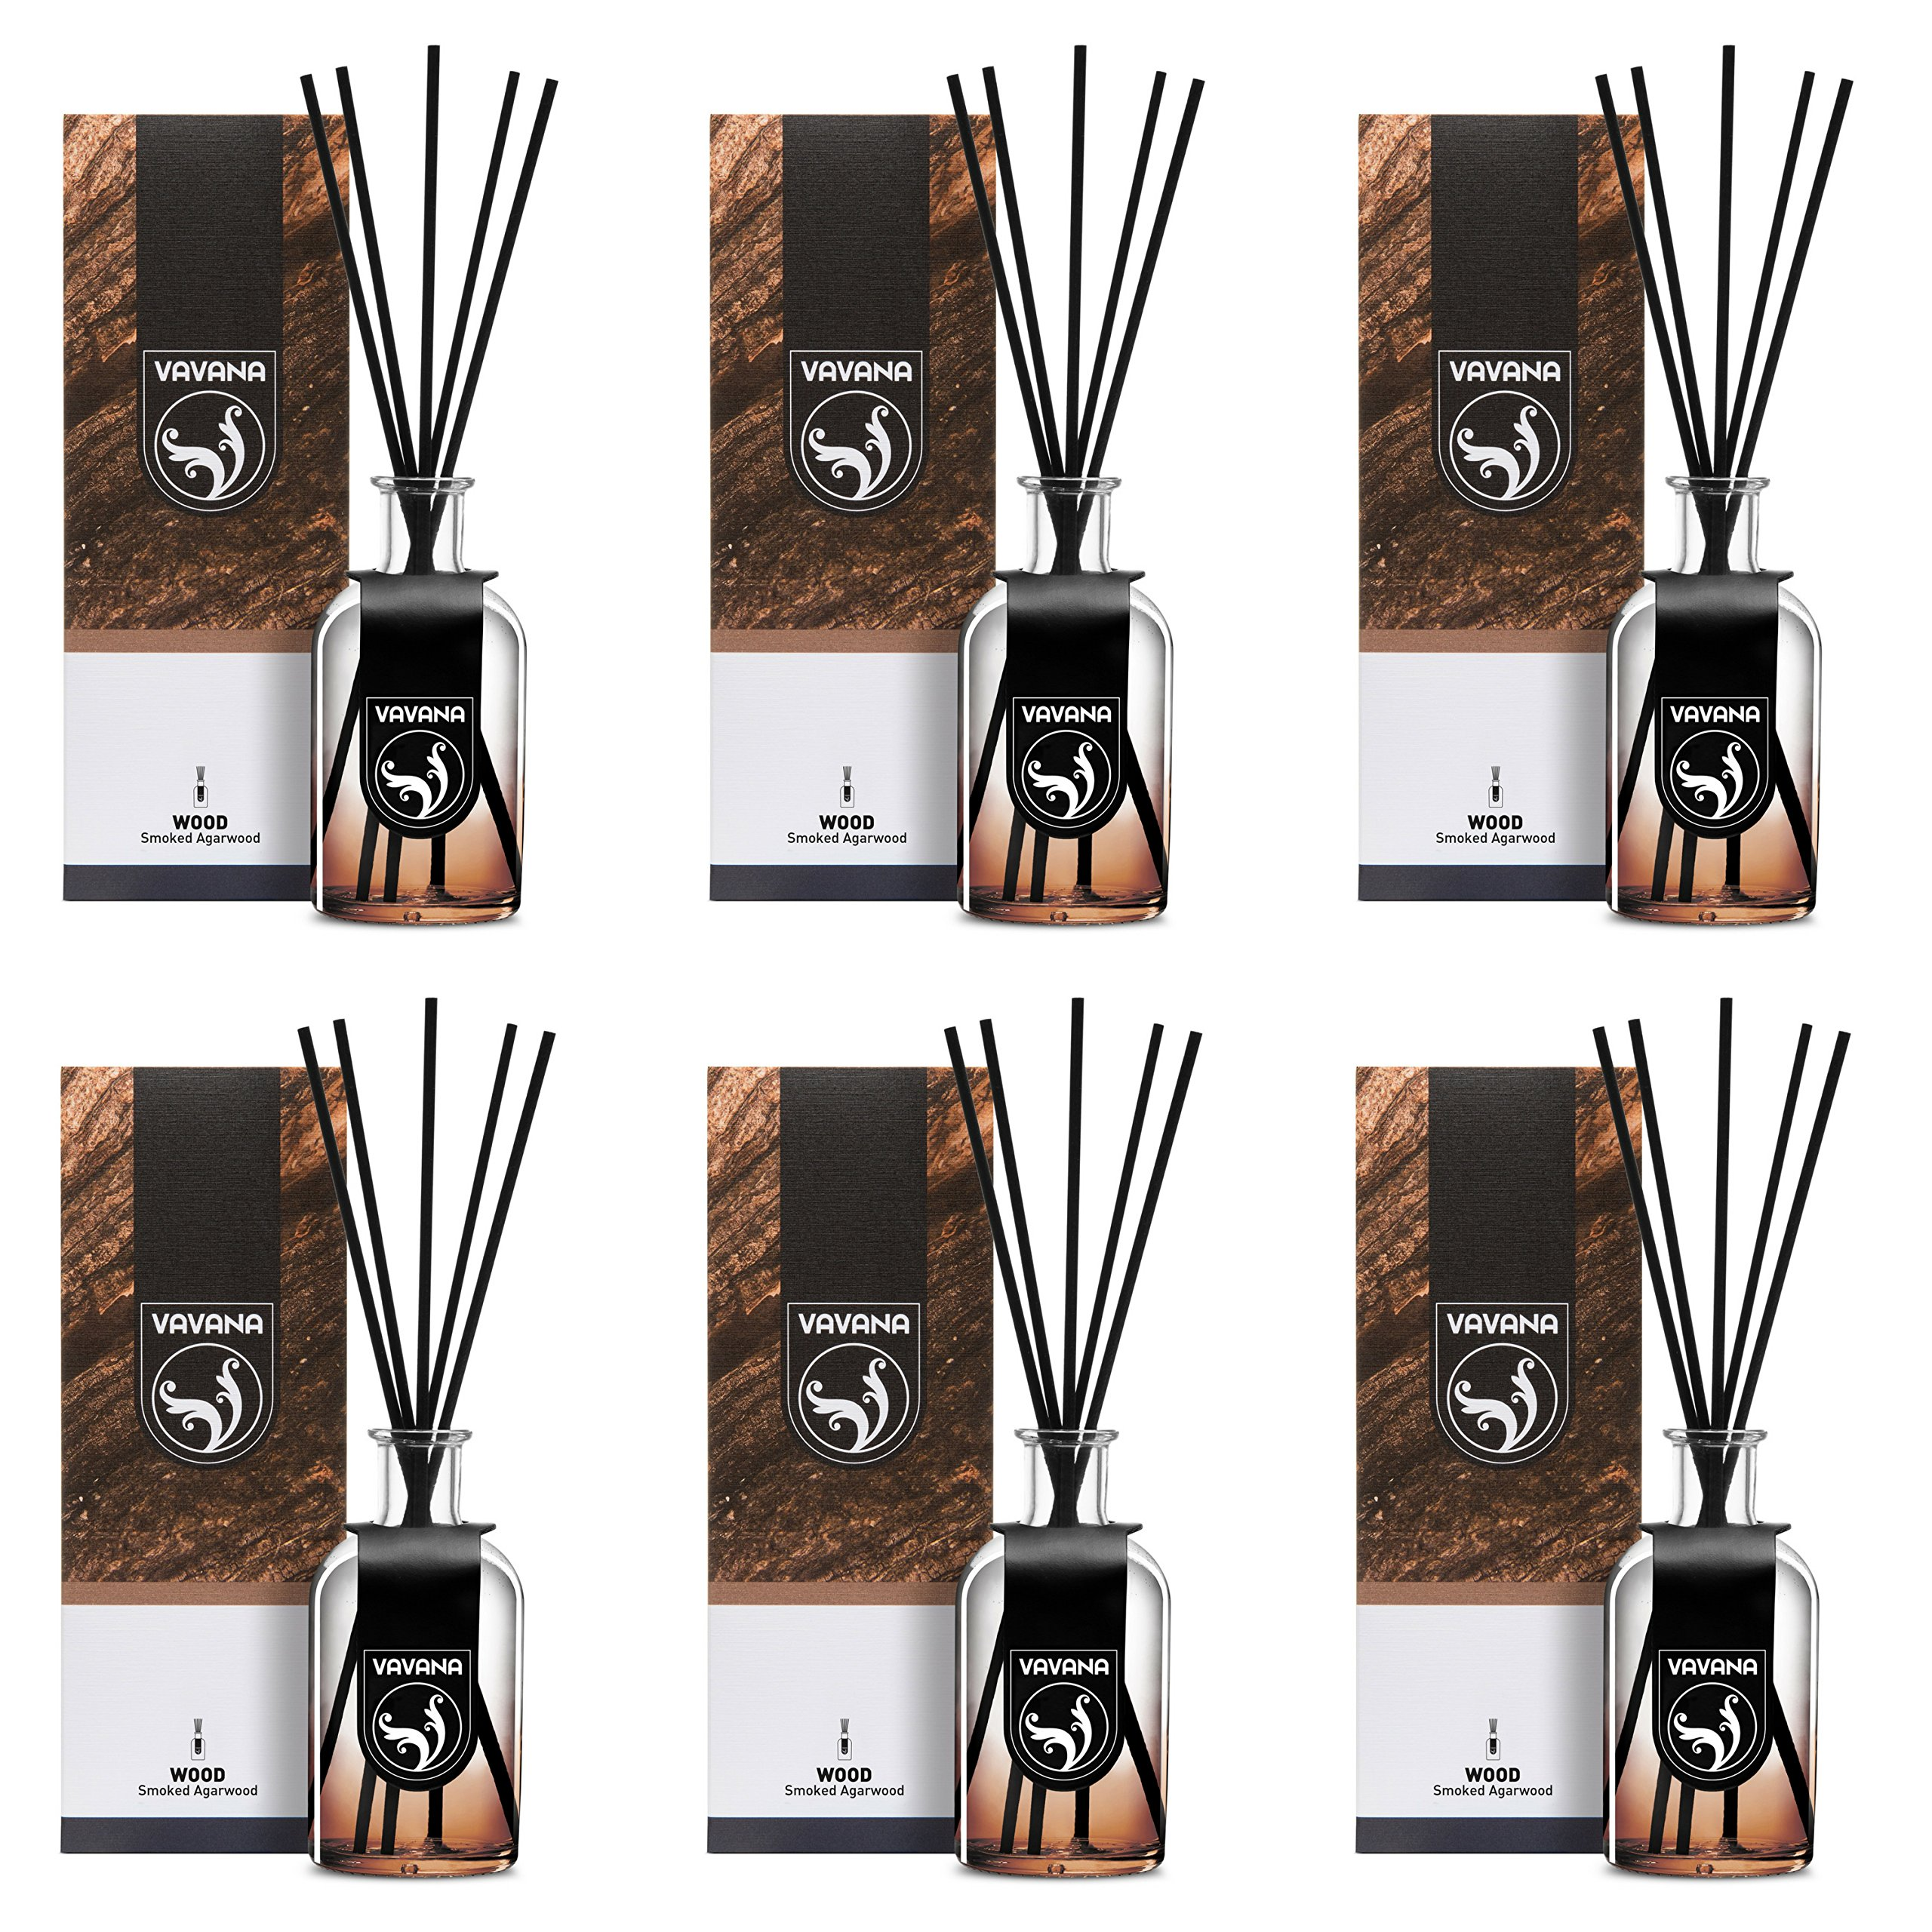 VAVANA Aromatherapy Diffuser Sticks | Reed Diffuser Set | Aromatic Home Fragrance Set | Essential Oil Diffuser Sticks, Made of Natural Scented Oils Blend | 100 ML/3.4 OZ - 6 Pack (Smoked A.Wood)